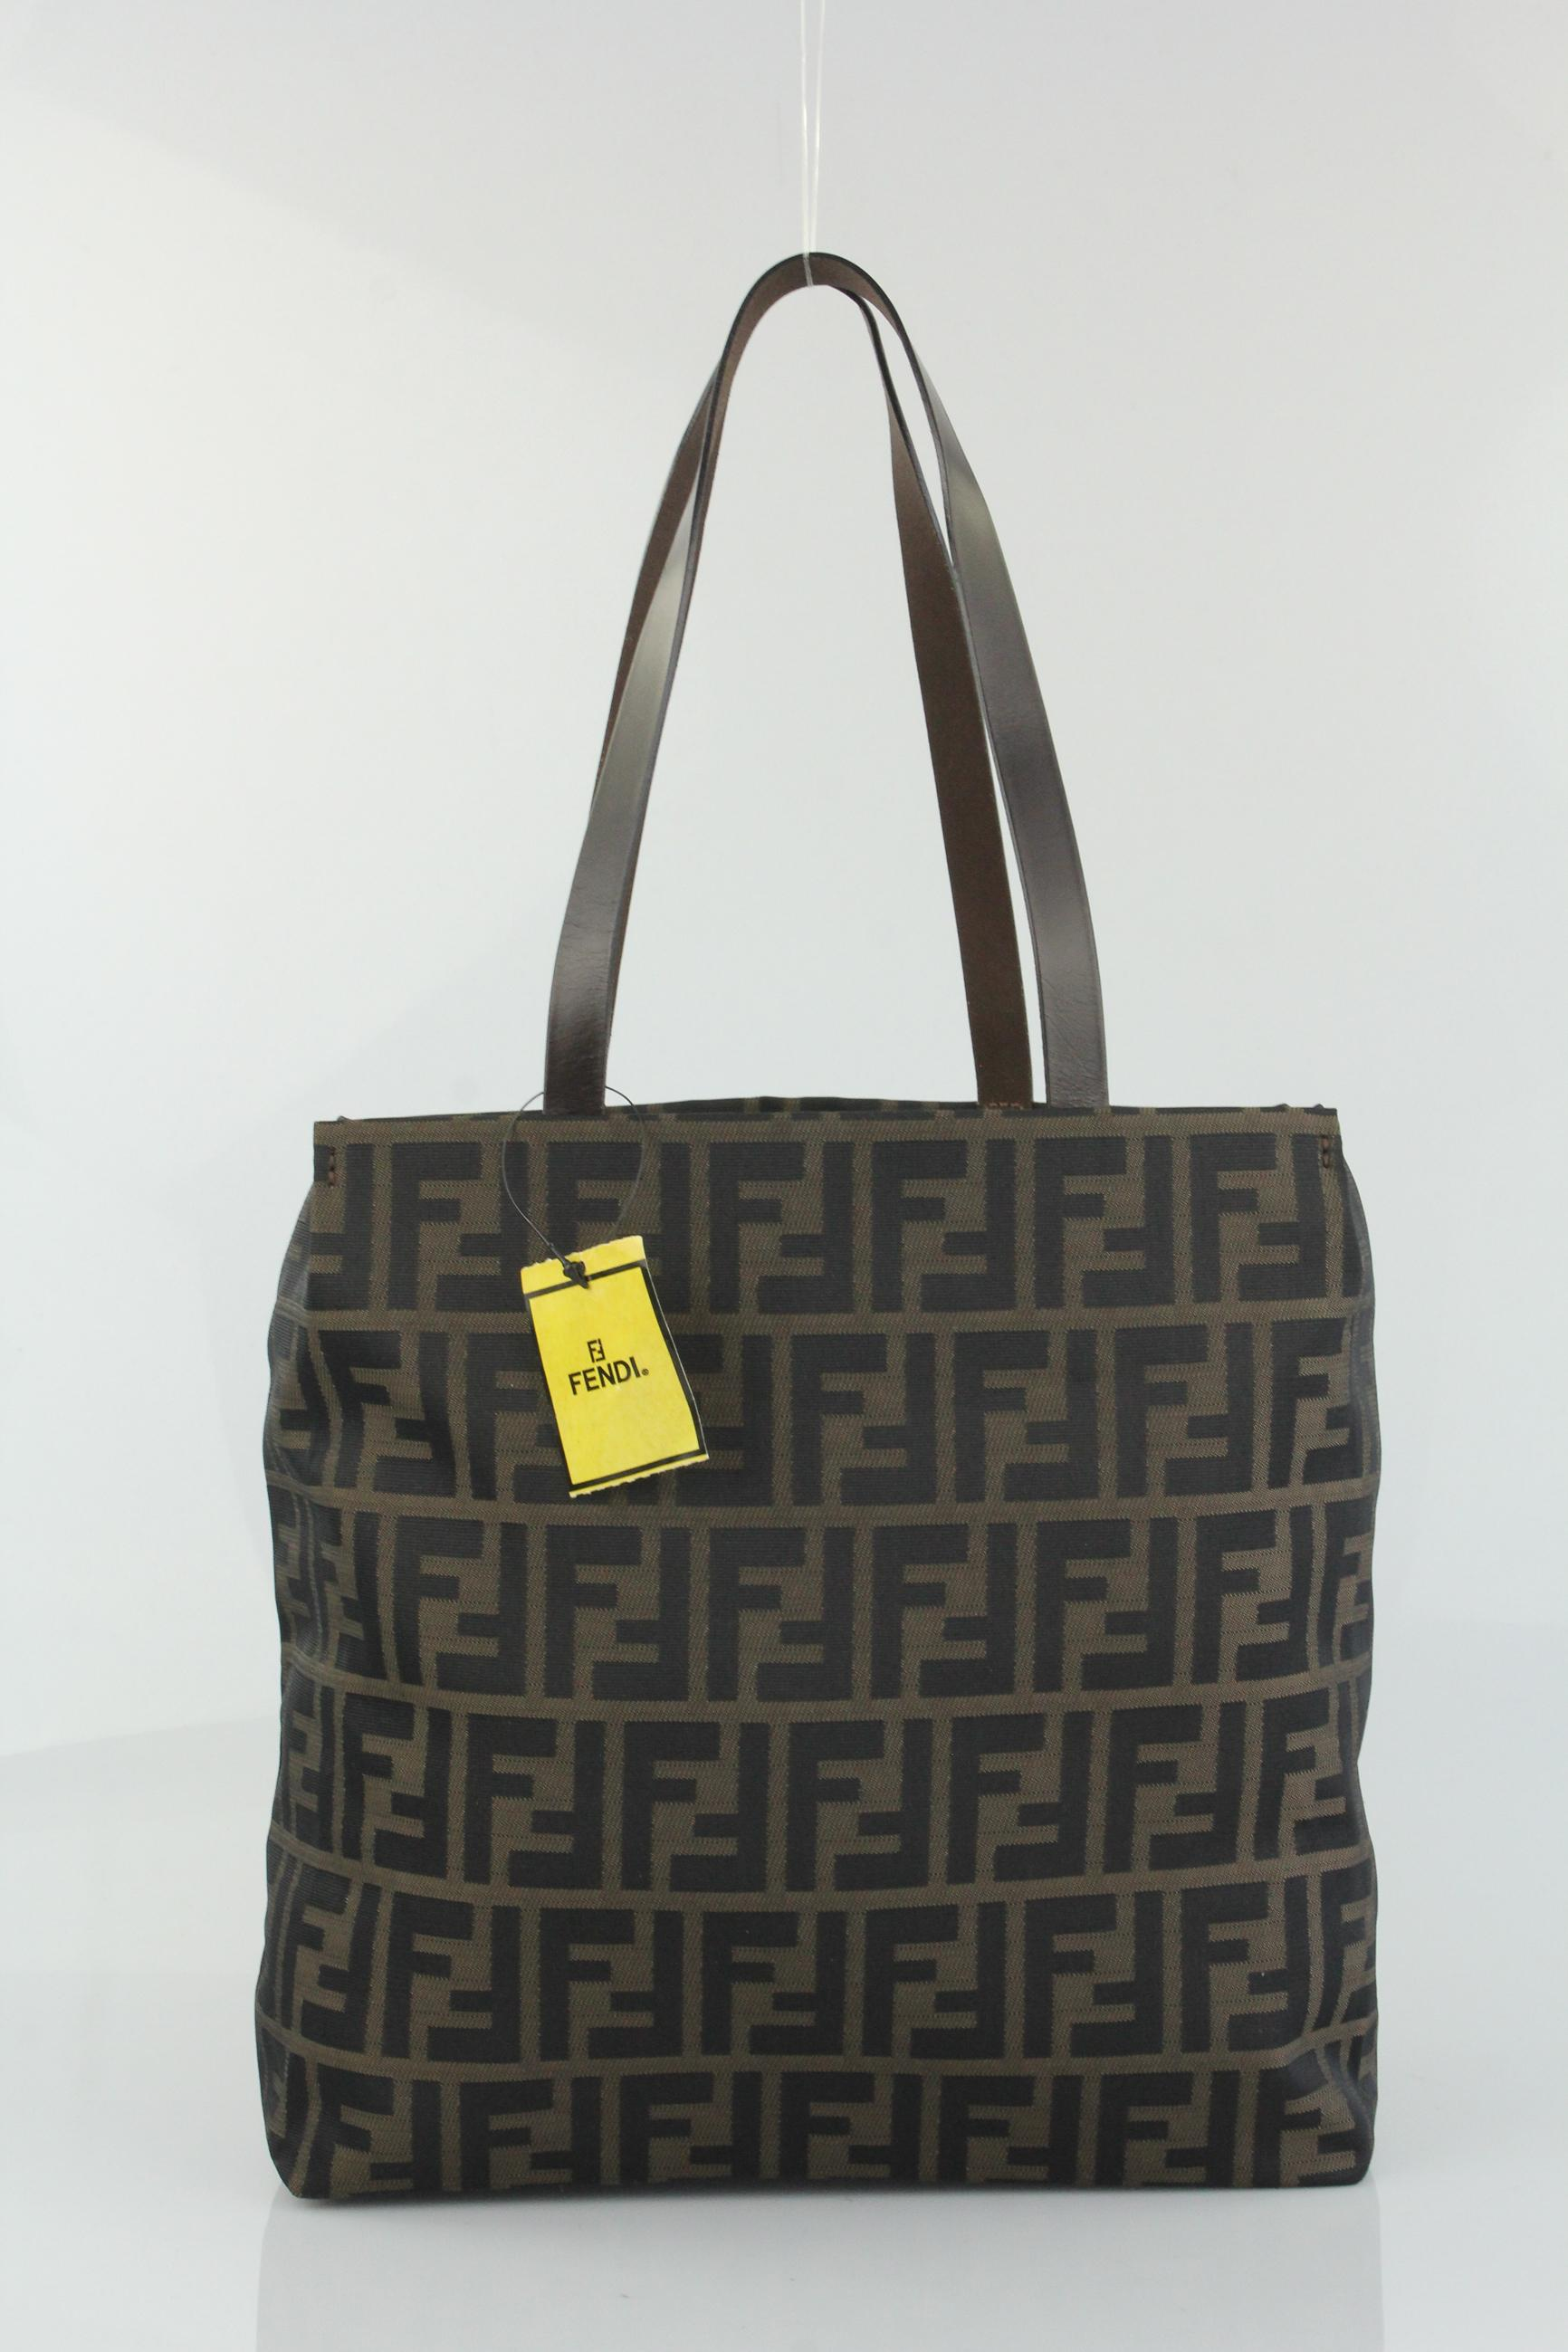 ... bag 51267 ae374 good fendi zucca canvas shopping tote in brown. f0bc6ef639